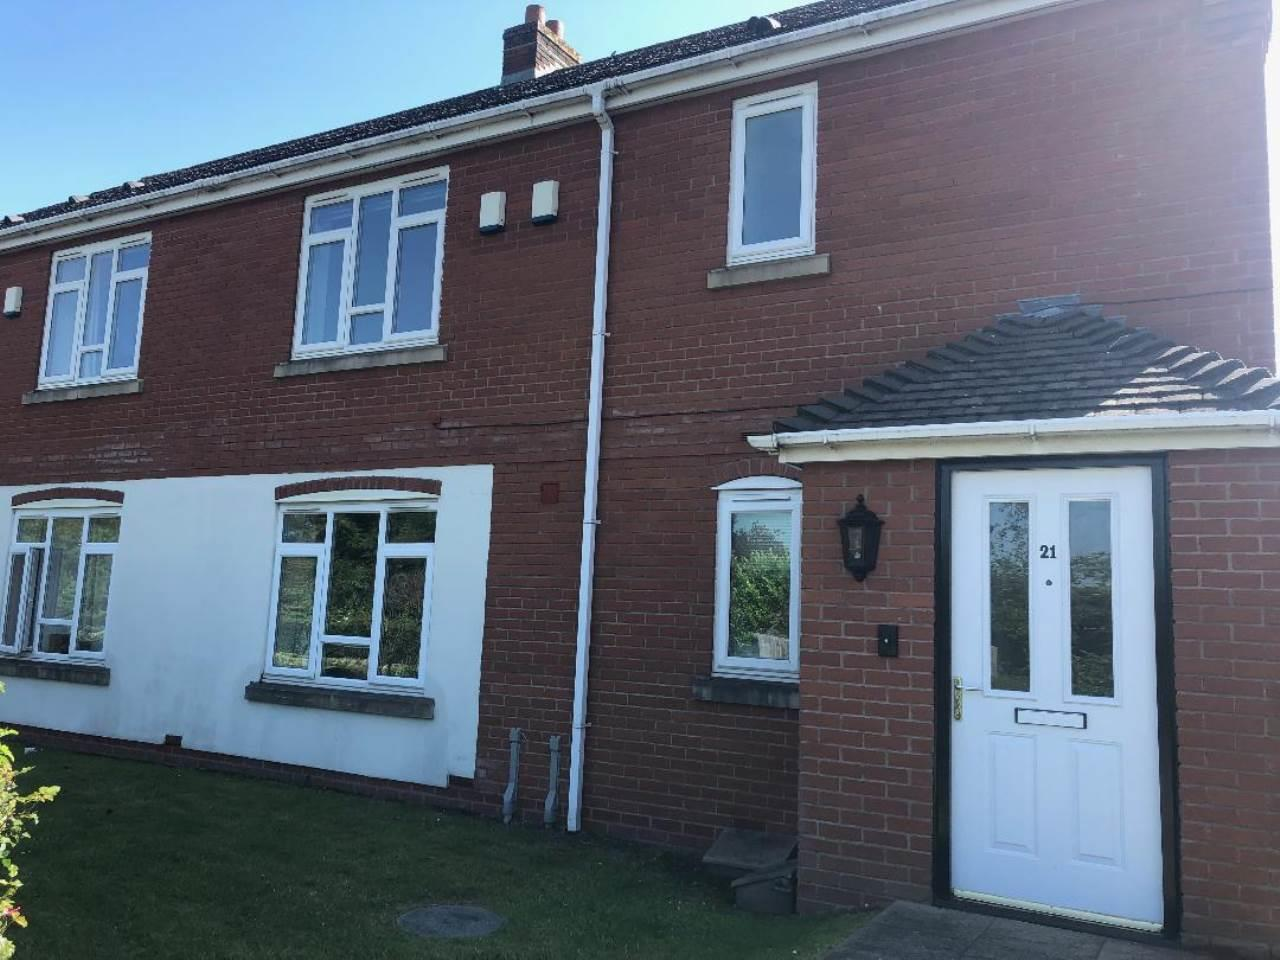 2 bed flat to rent in Thimble End Court, Sutton Coldfield, B76